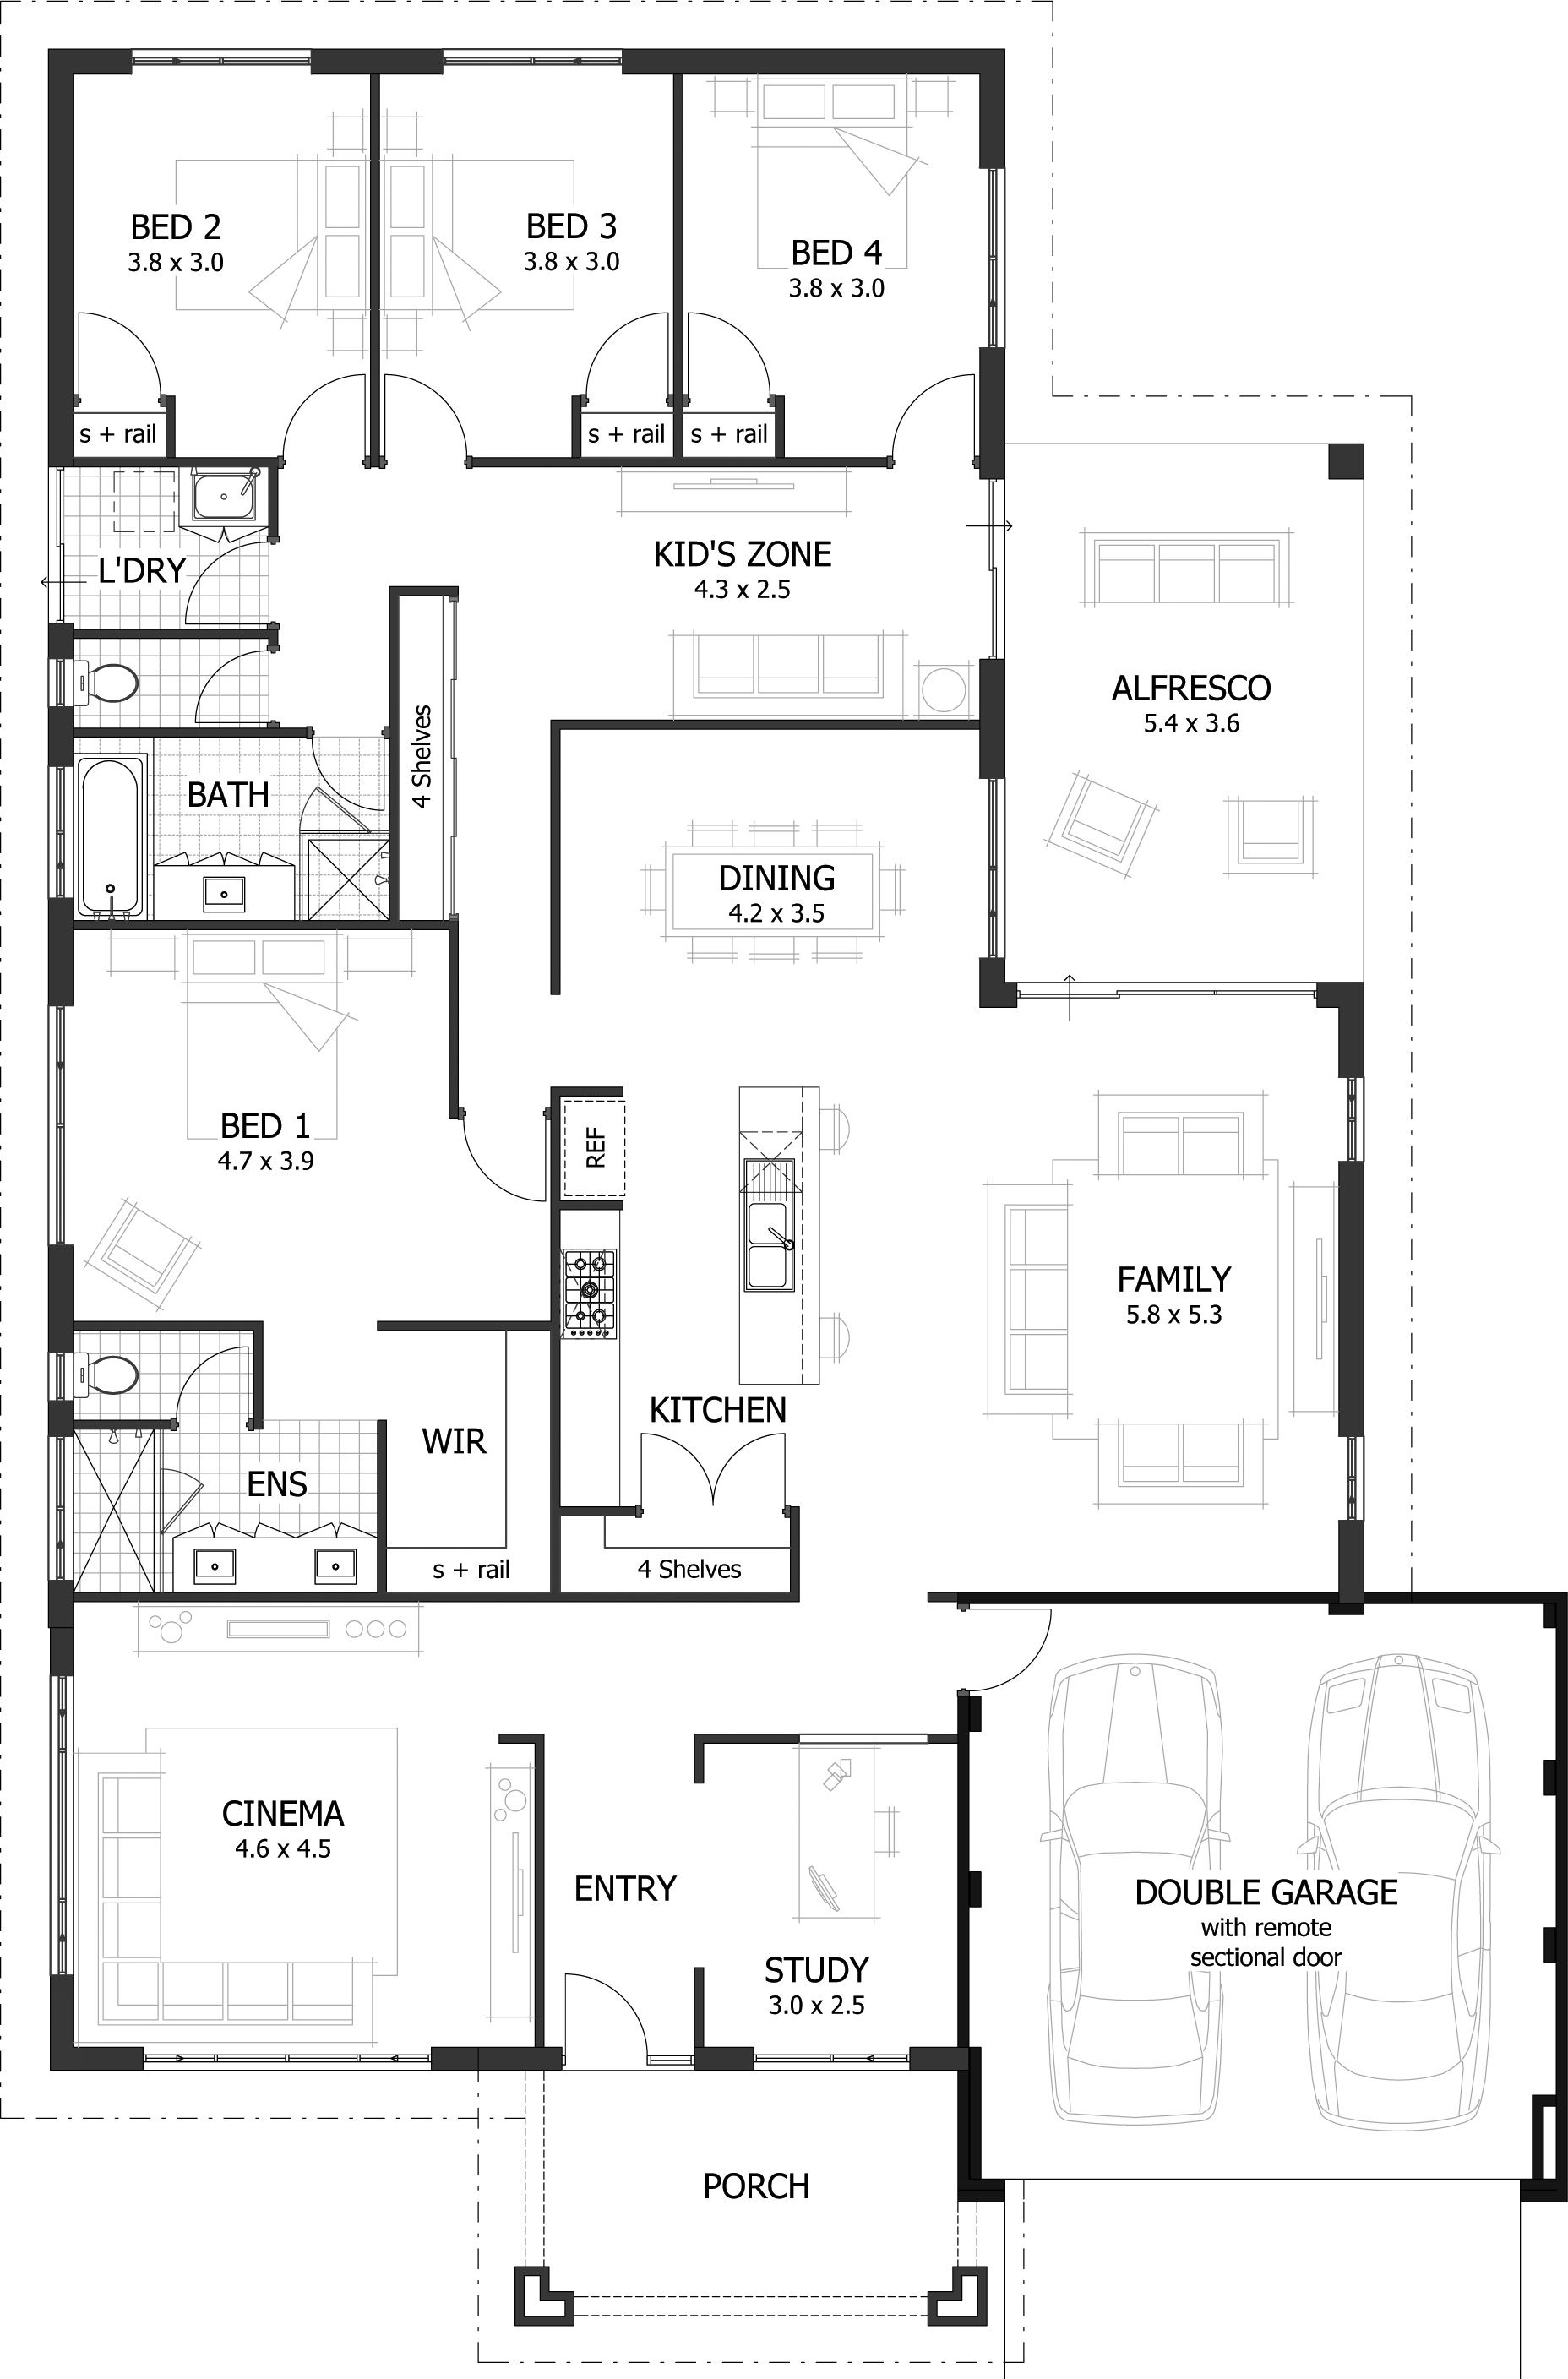 High Quality 4 Bedroom House Plans U0026 Home Designs | Celebration Homes